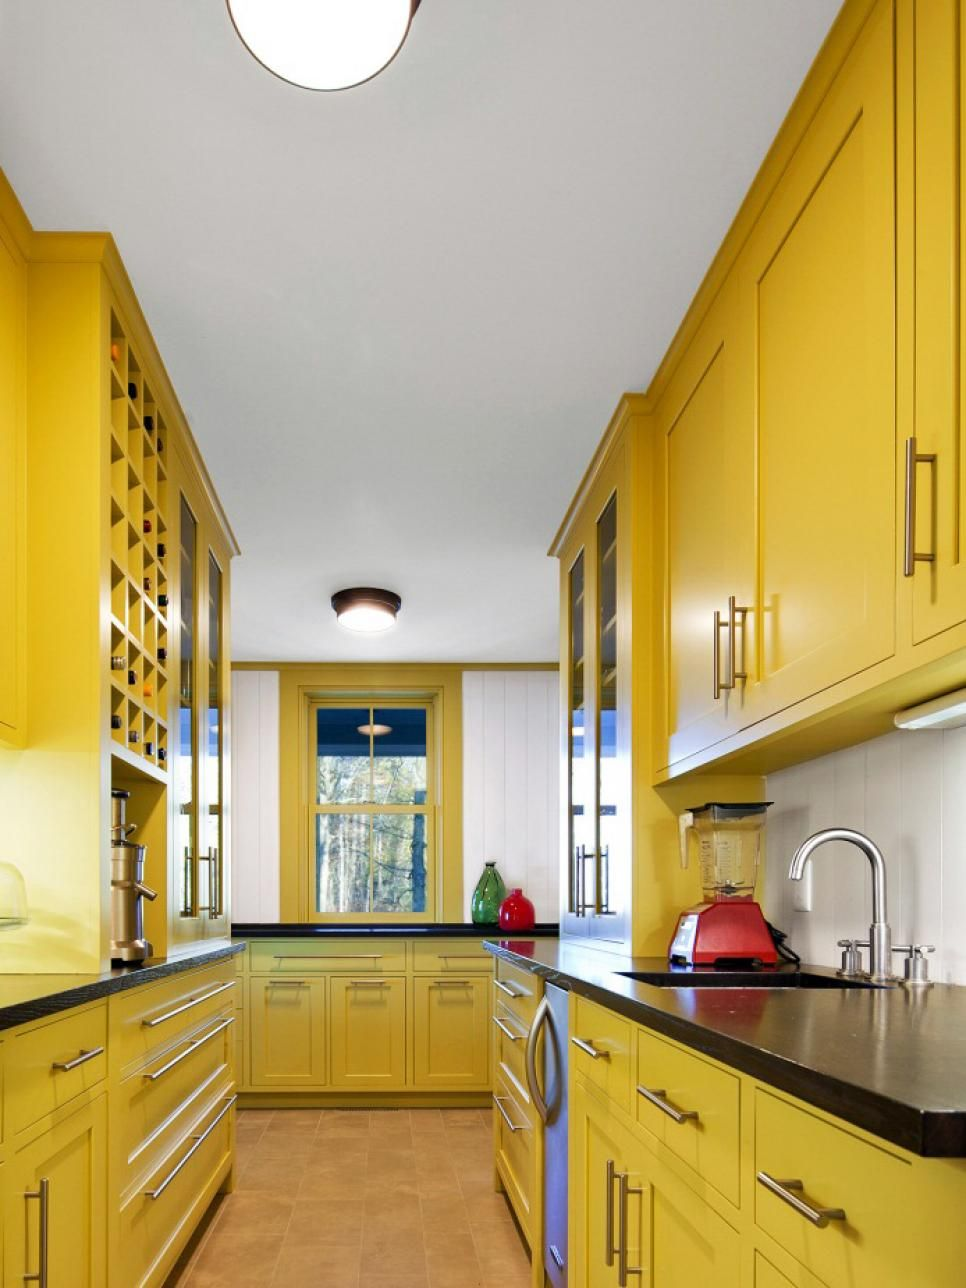 Don T Be Afraid Of Color In The Kitchen These Kitchens Feature Brilliant Paint Tile Accessor Yellow Kitchen Walls Yellow Kitchen Decor Modern Kitchen Design